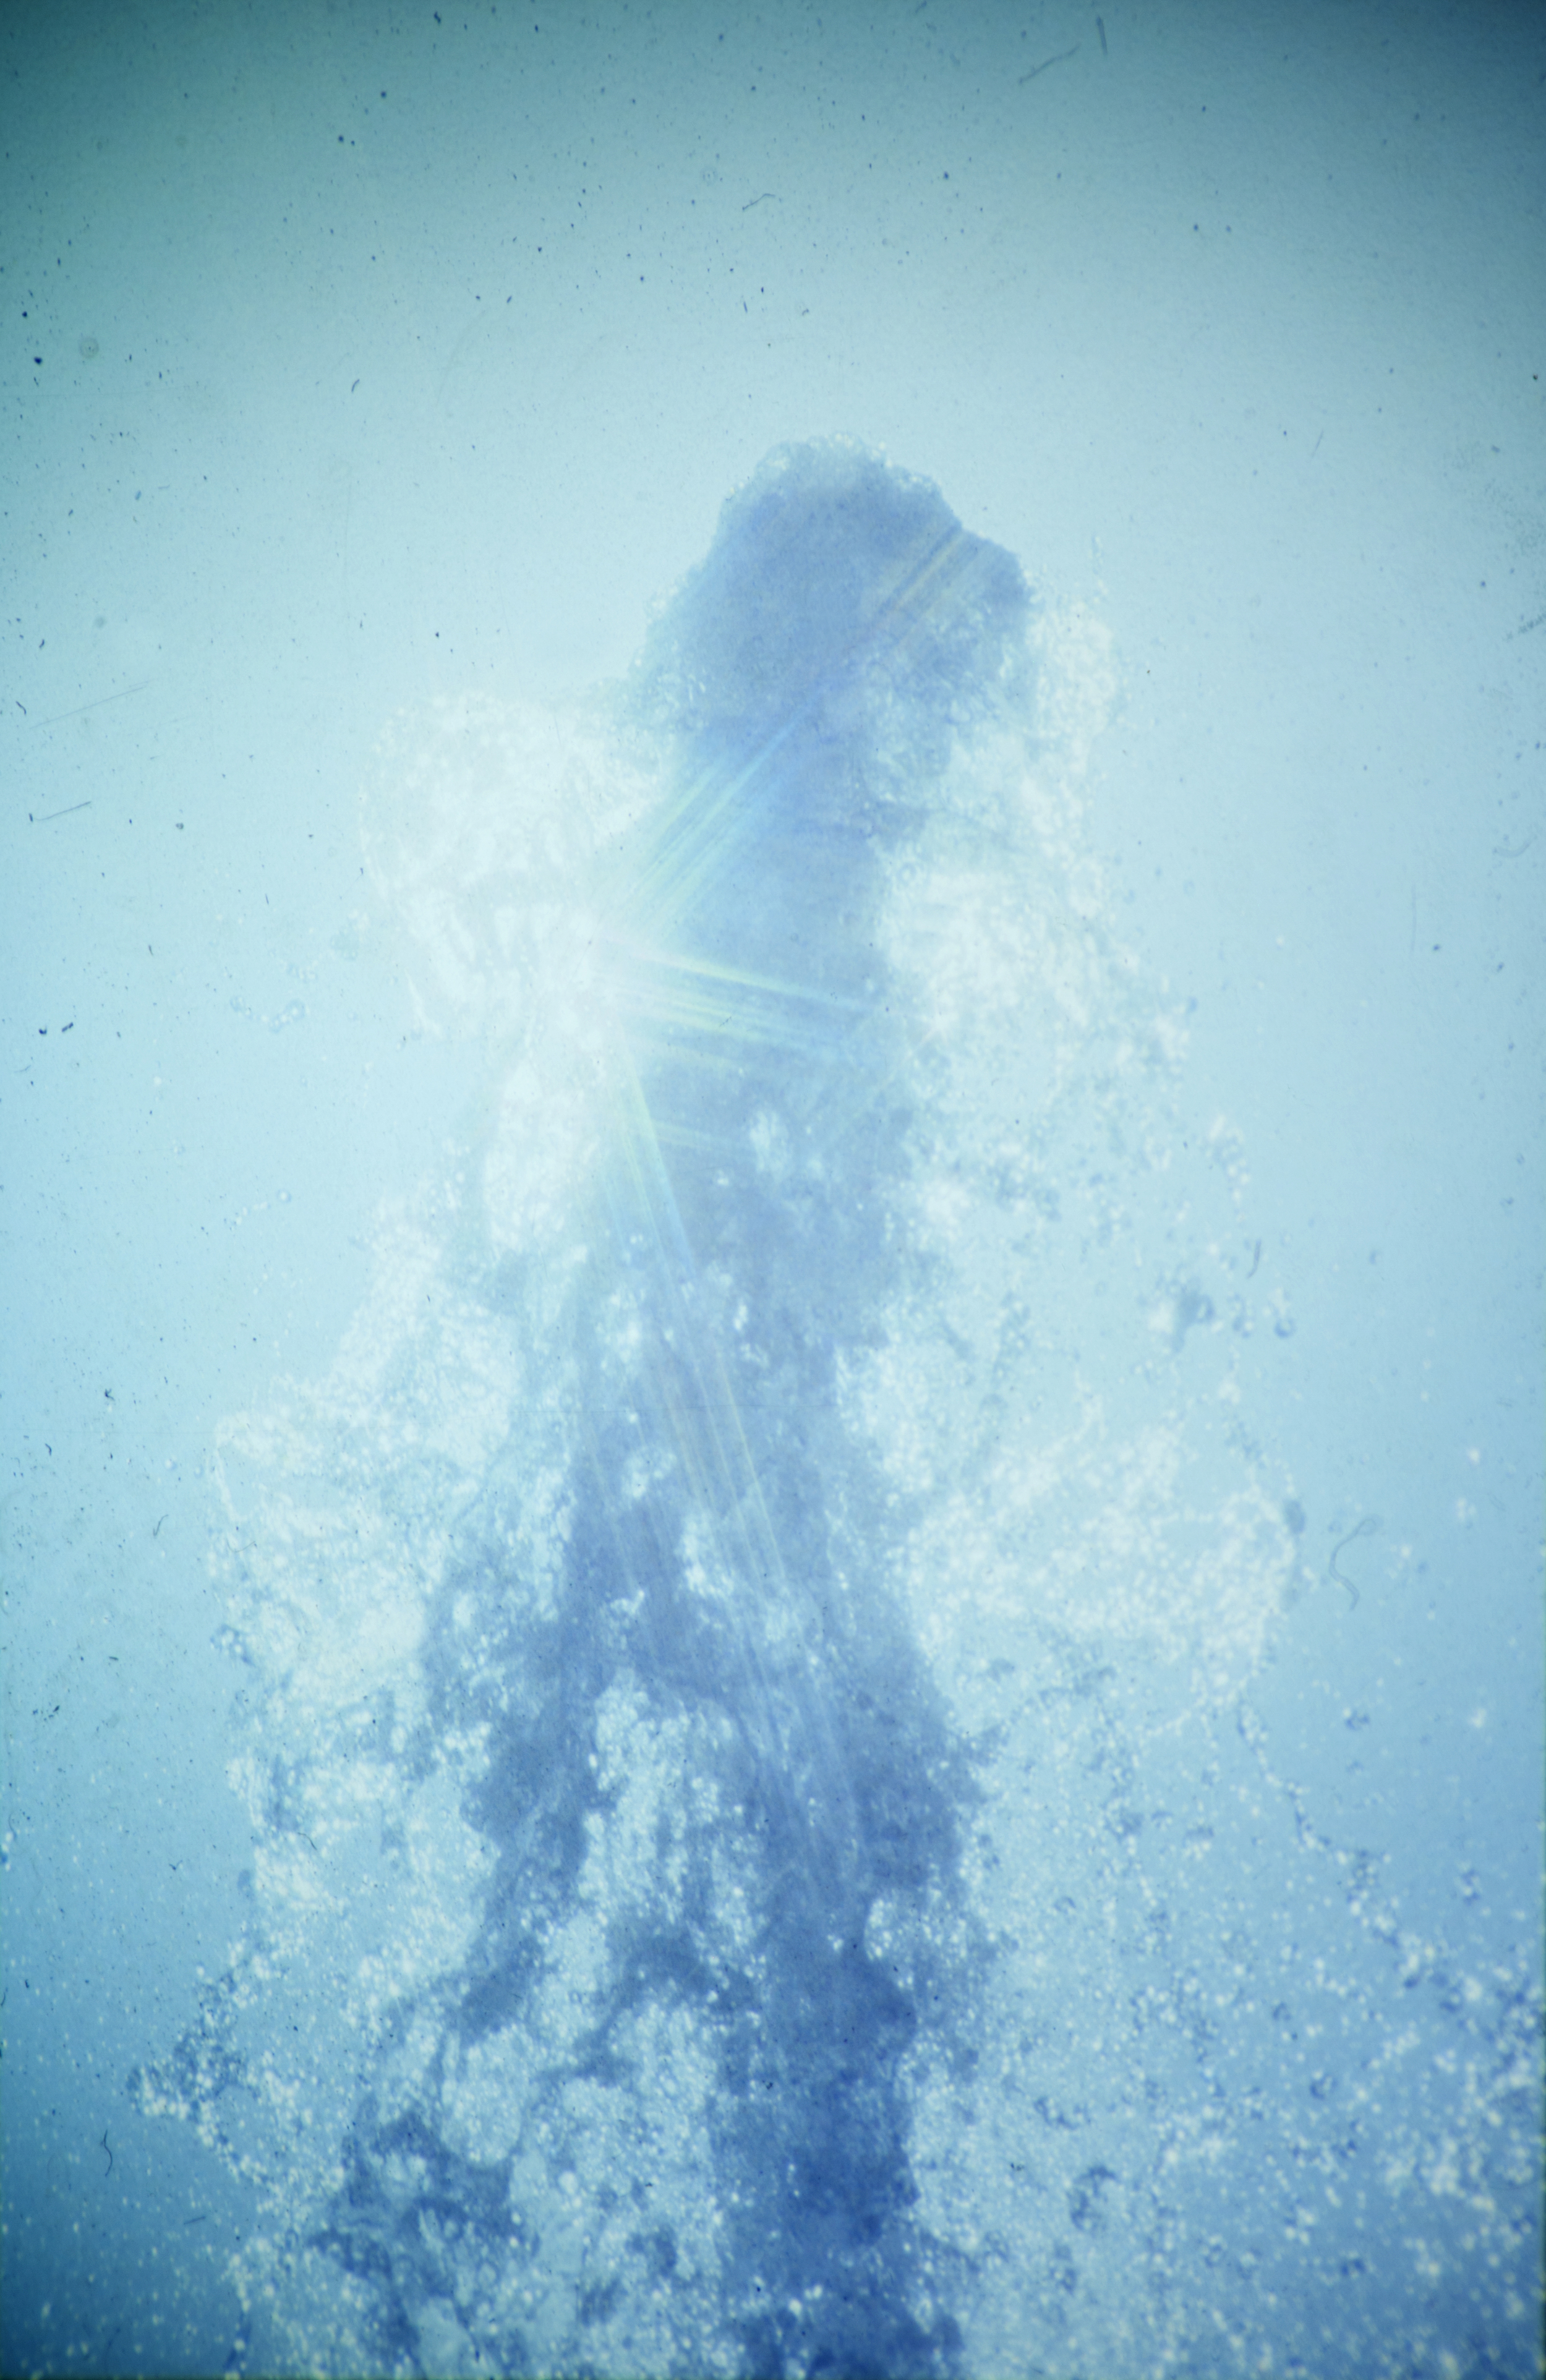 Water nymph  Collaboration with Oliver Leach Analog projection / C-print, dimensions variable, 2014